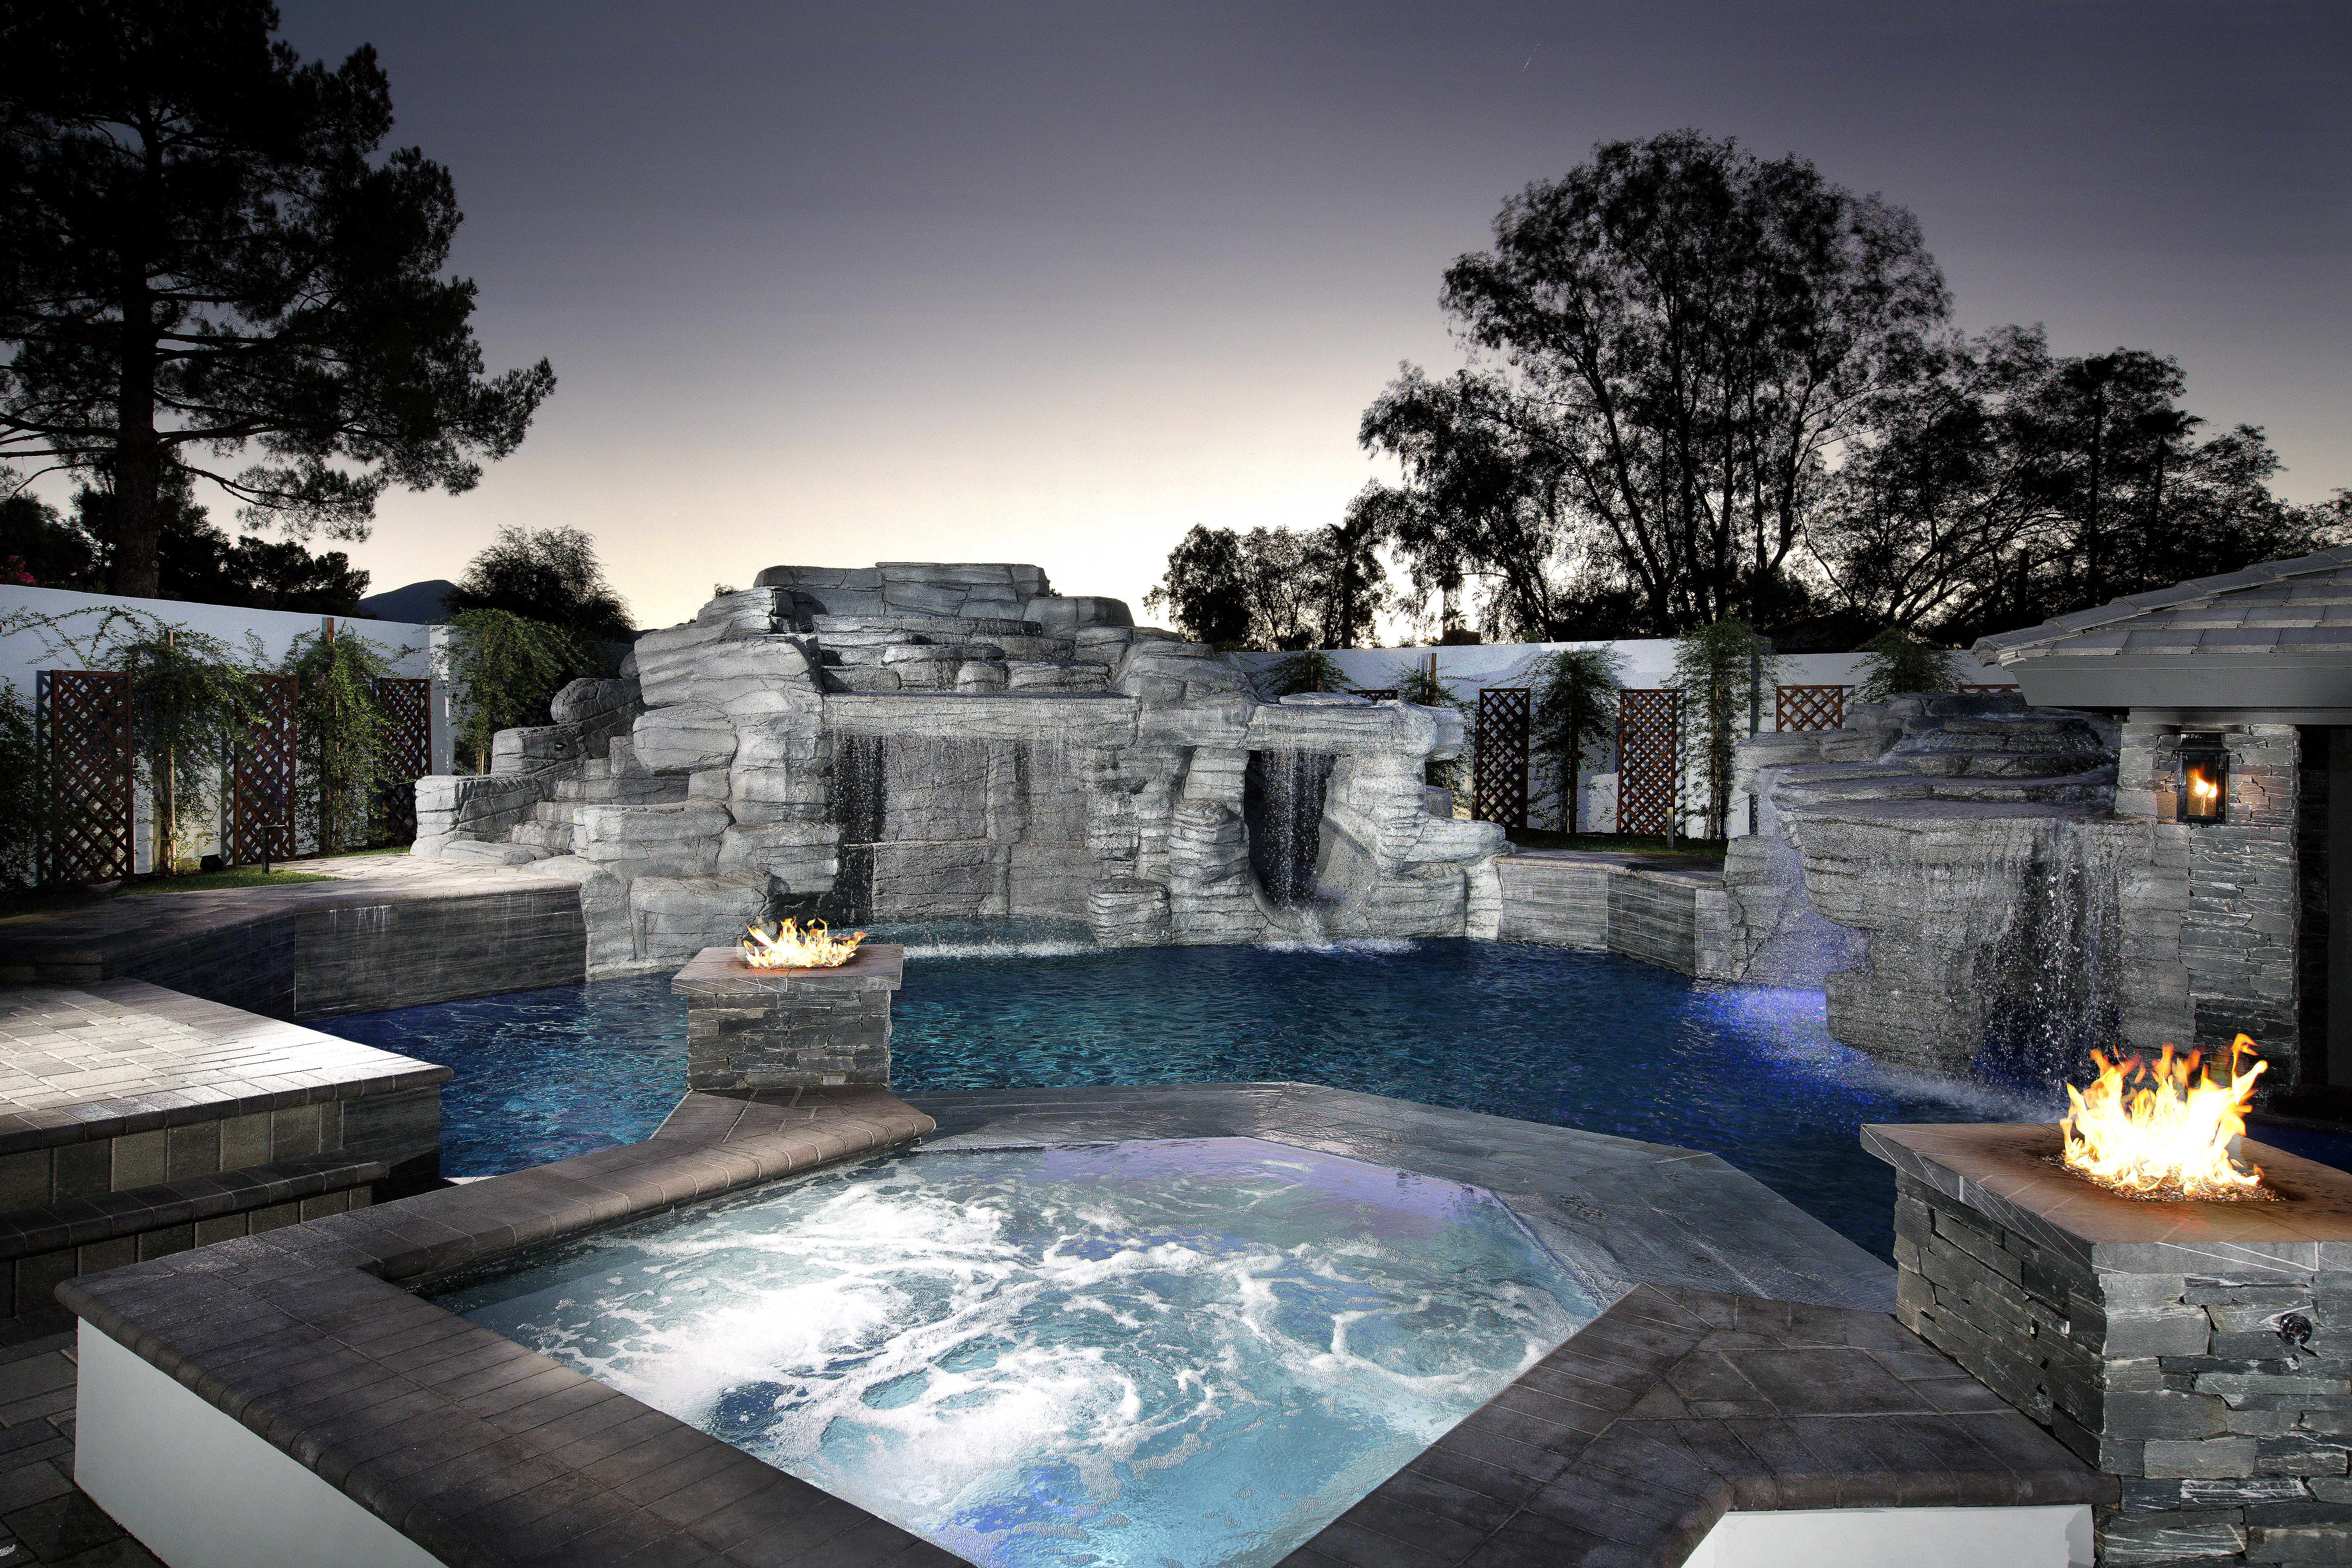 The Grotto Pool design by Presidential Pools